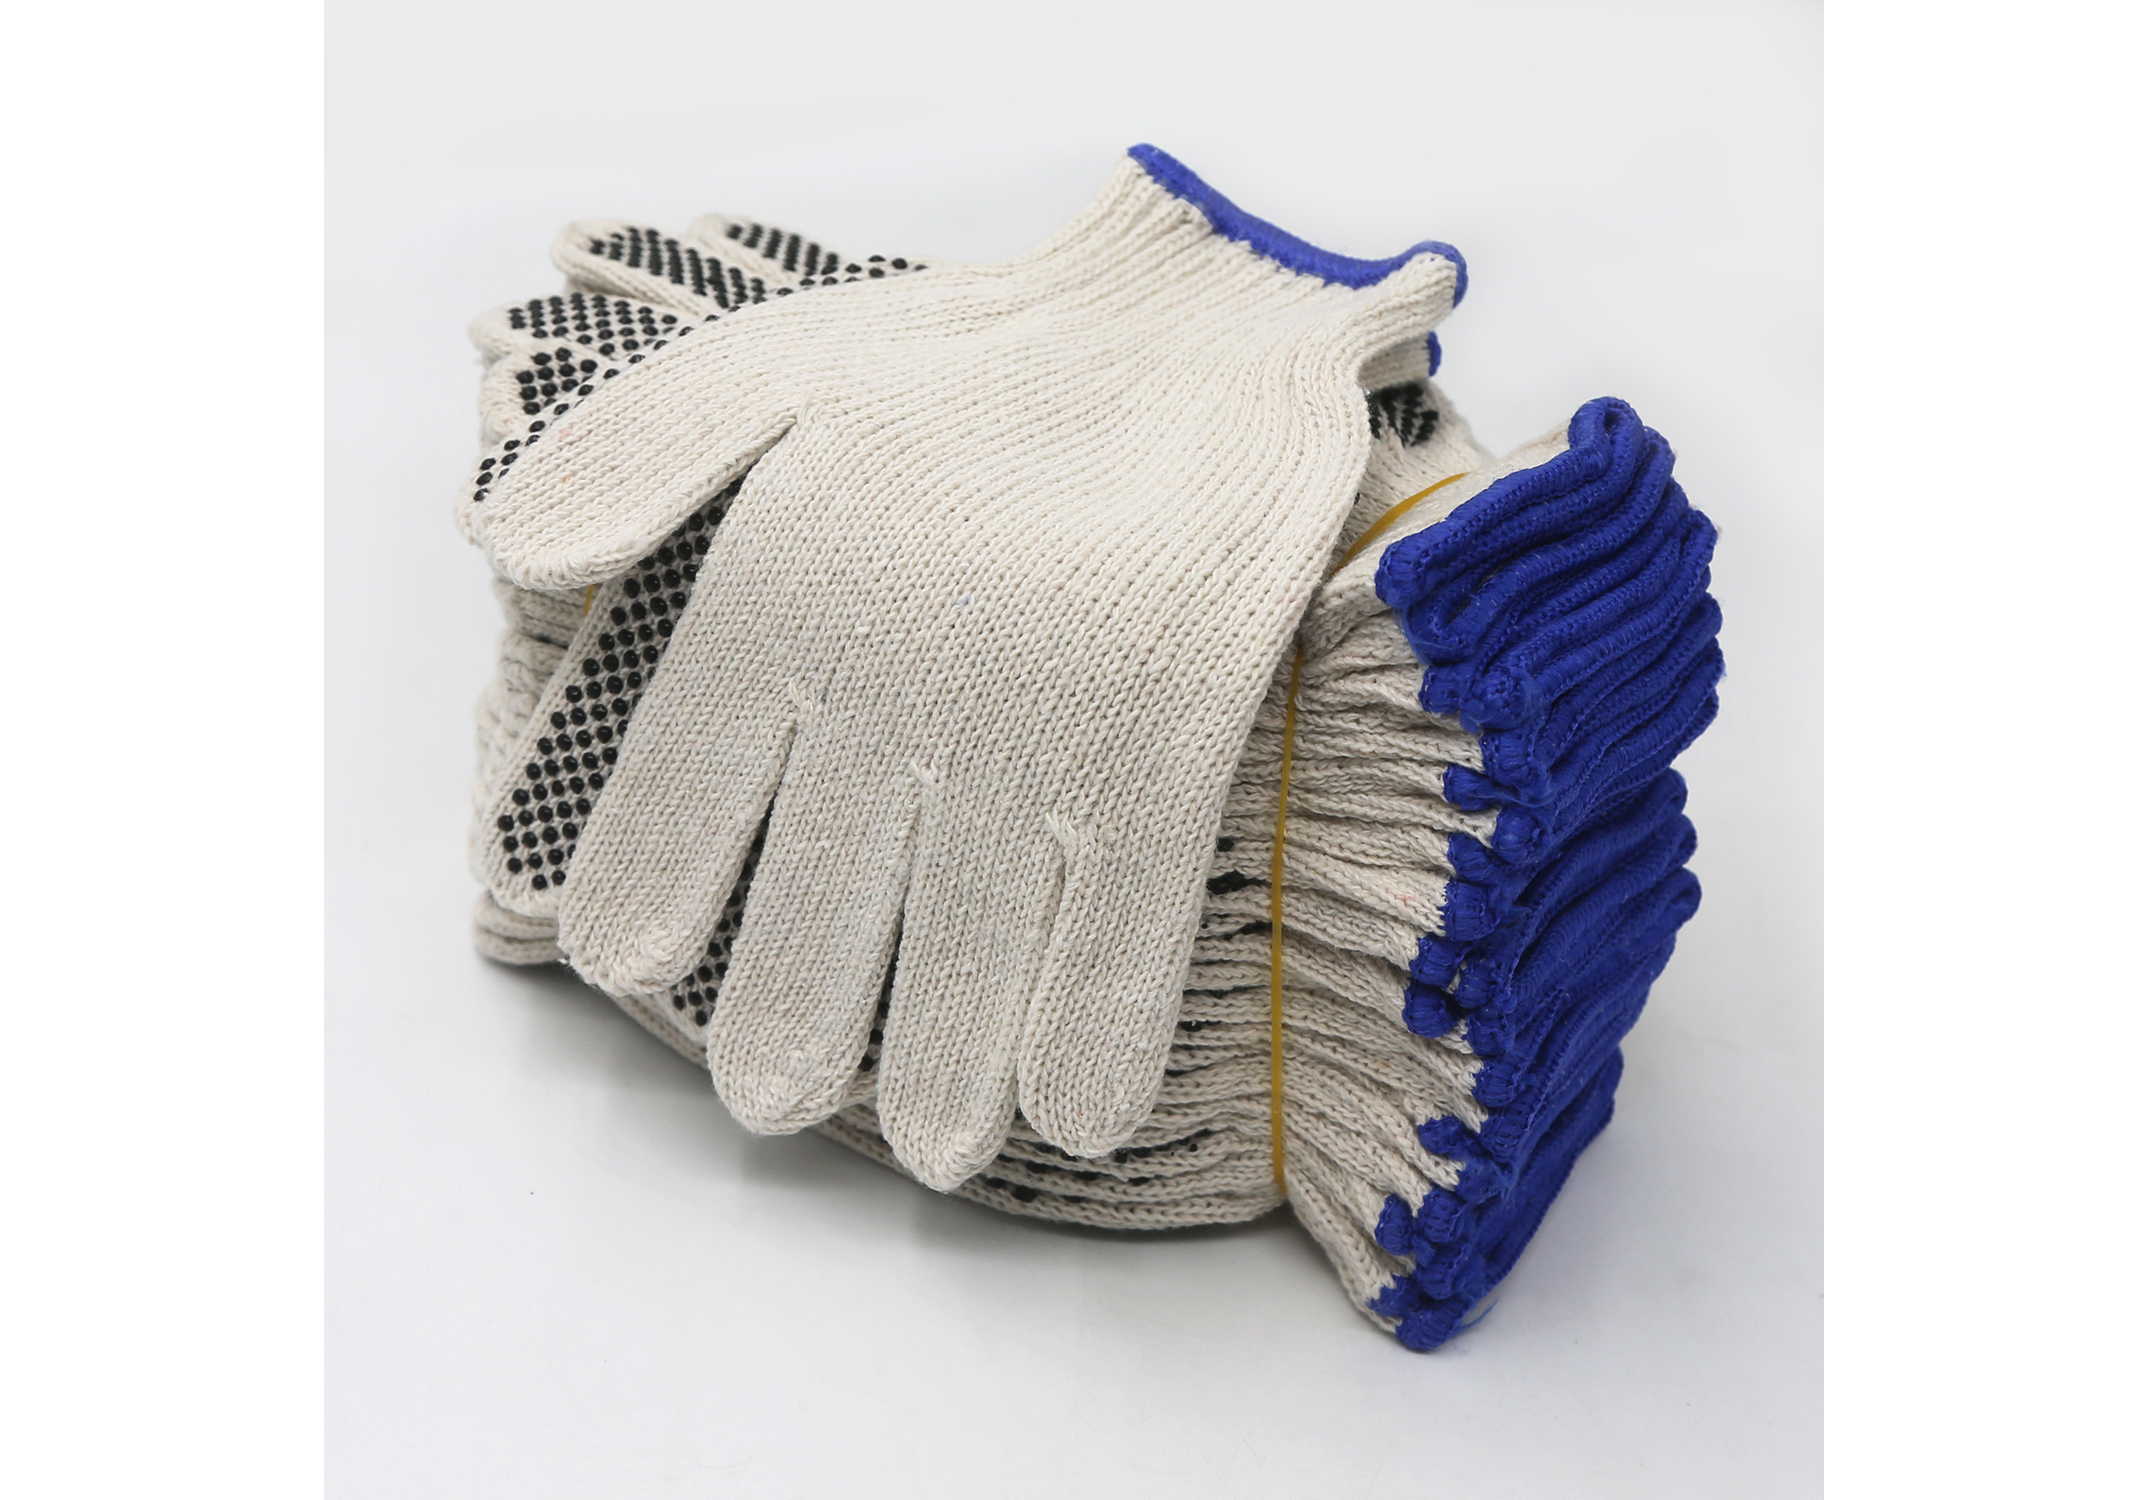 7G Lightweight String Knit Glove with PVC Dots on palm/SKG-026